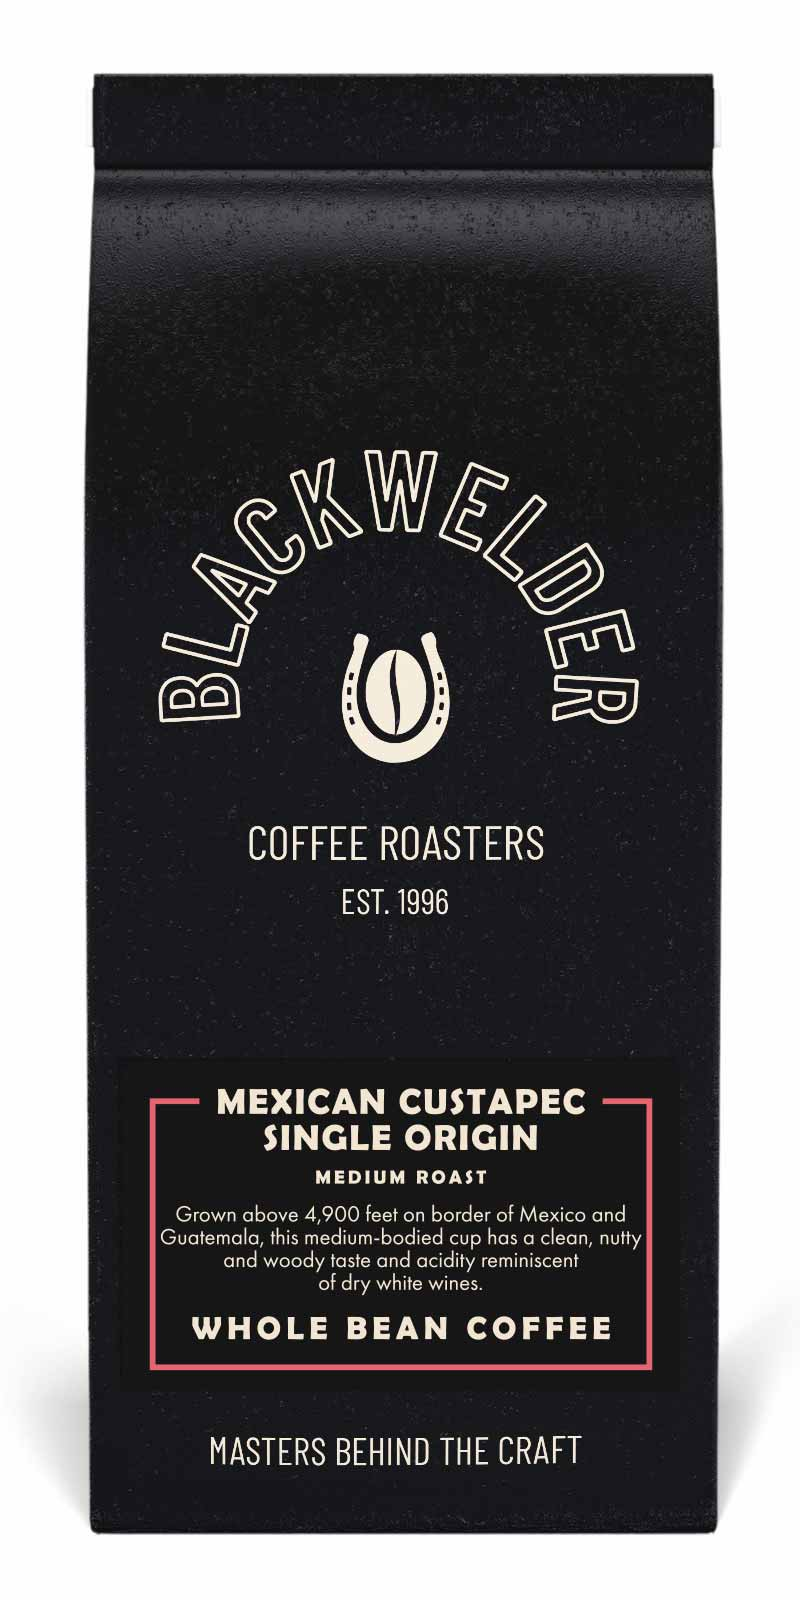 Mexican Custapec Single Origin